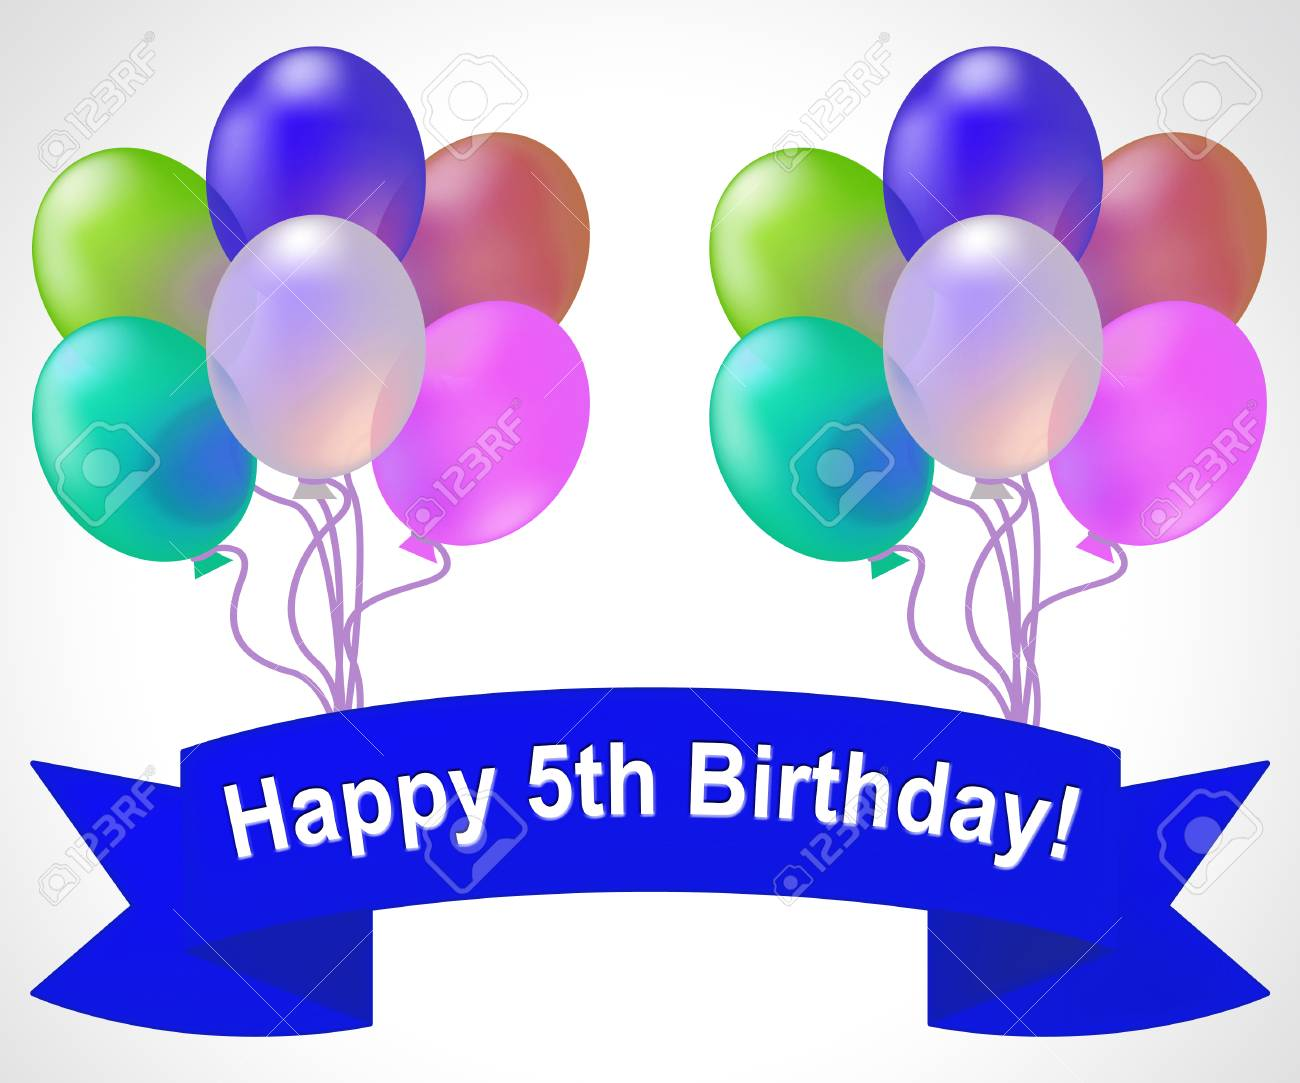 Happy Fifth Birthday Balloons Meaning 5th Party Celebration 3d Illustration Stock